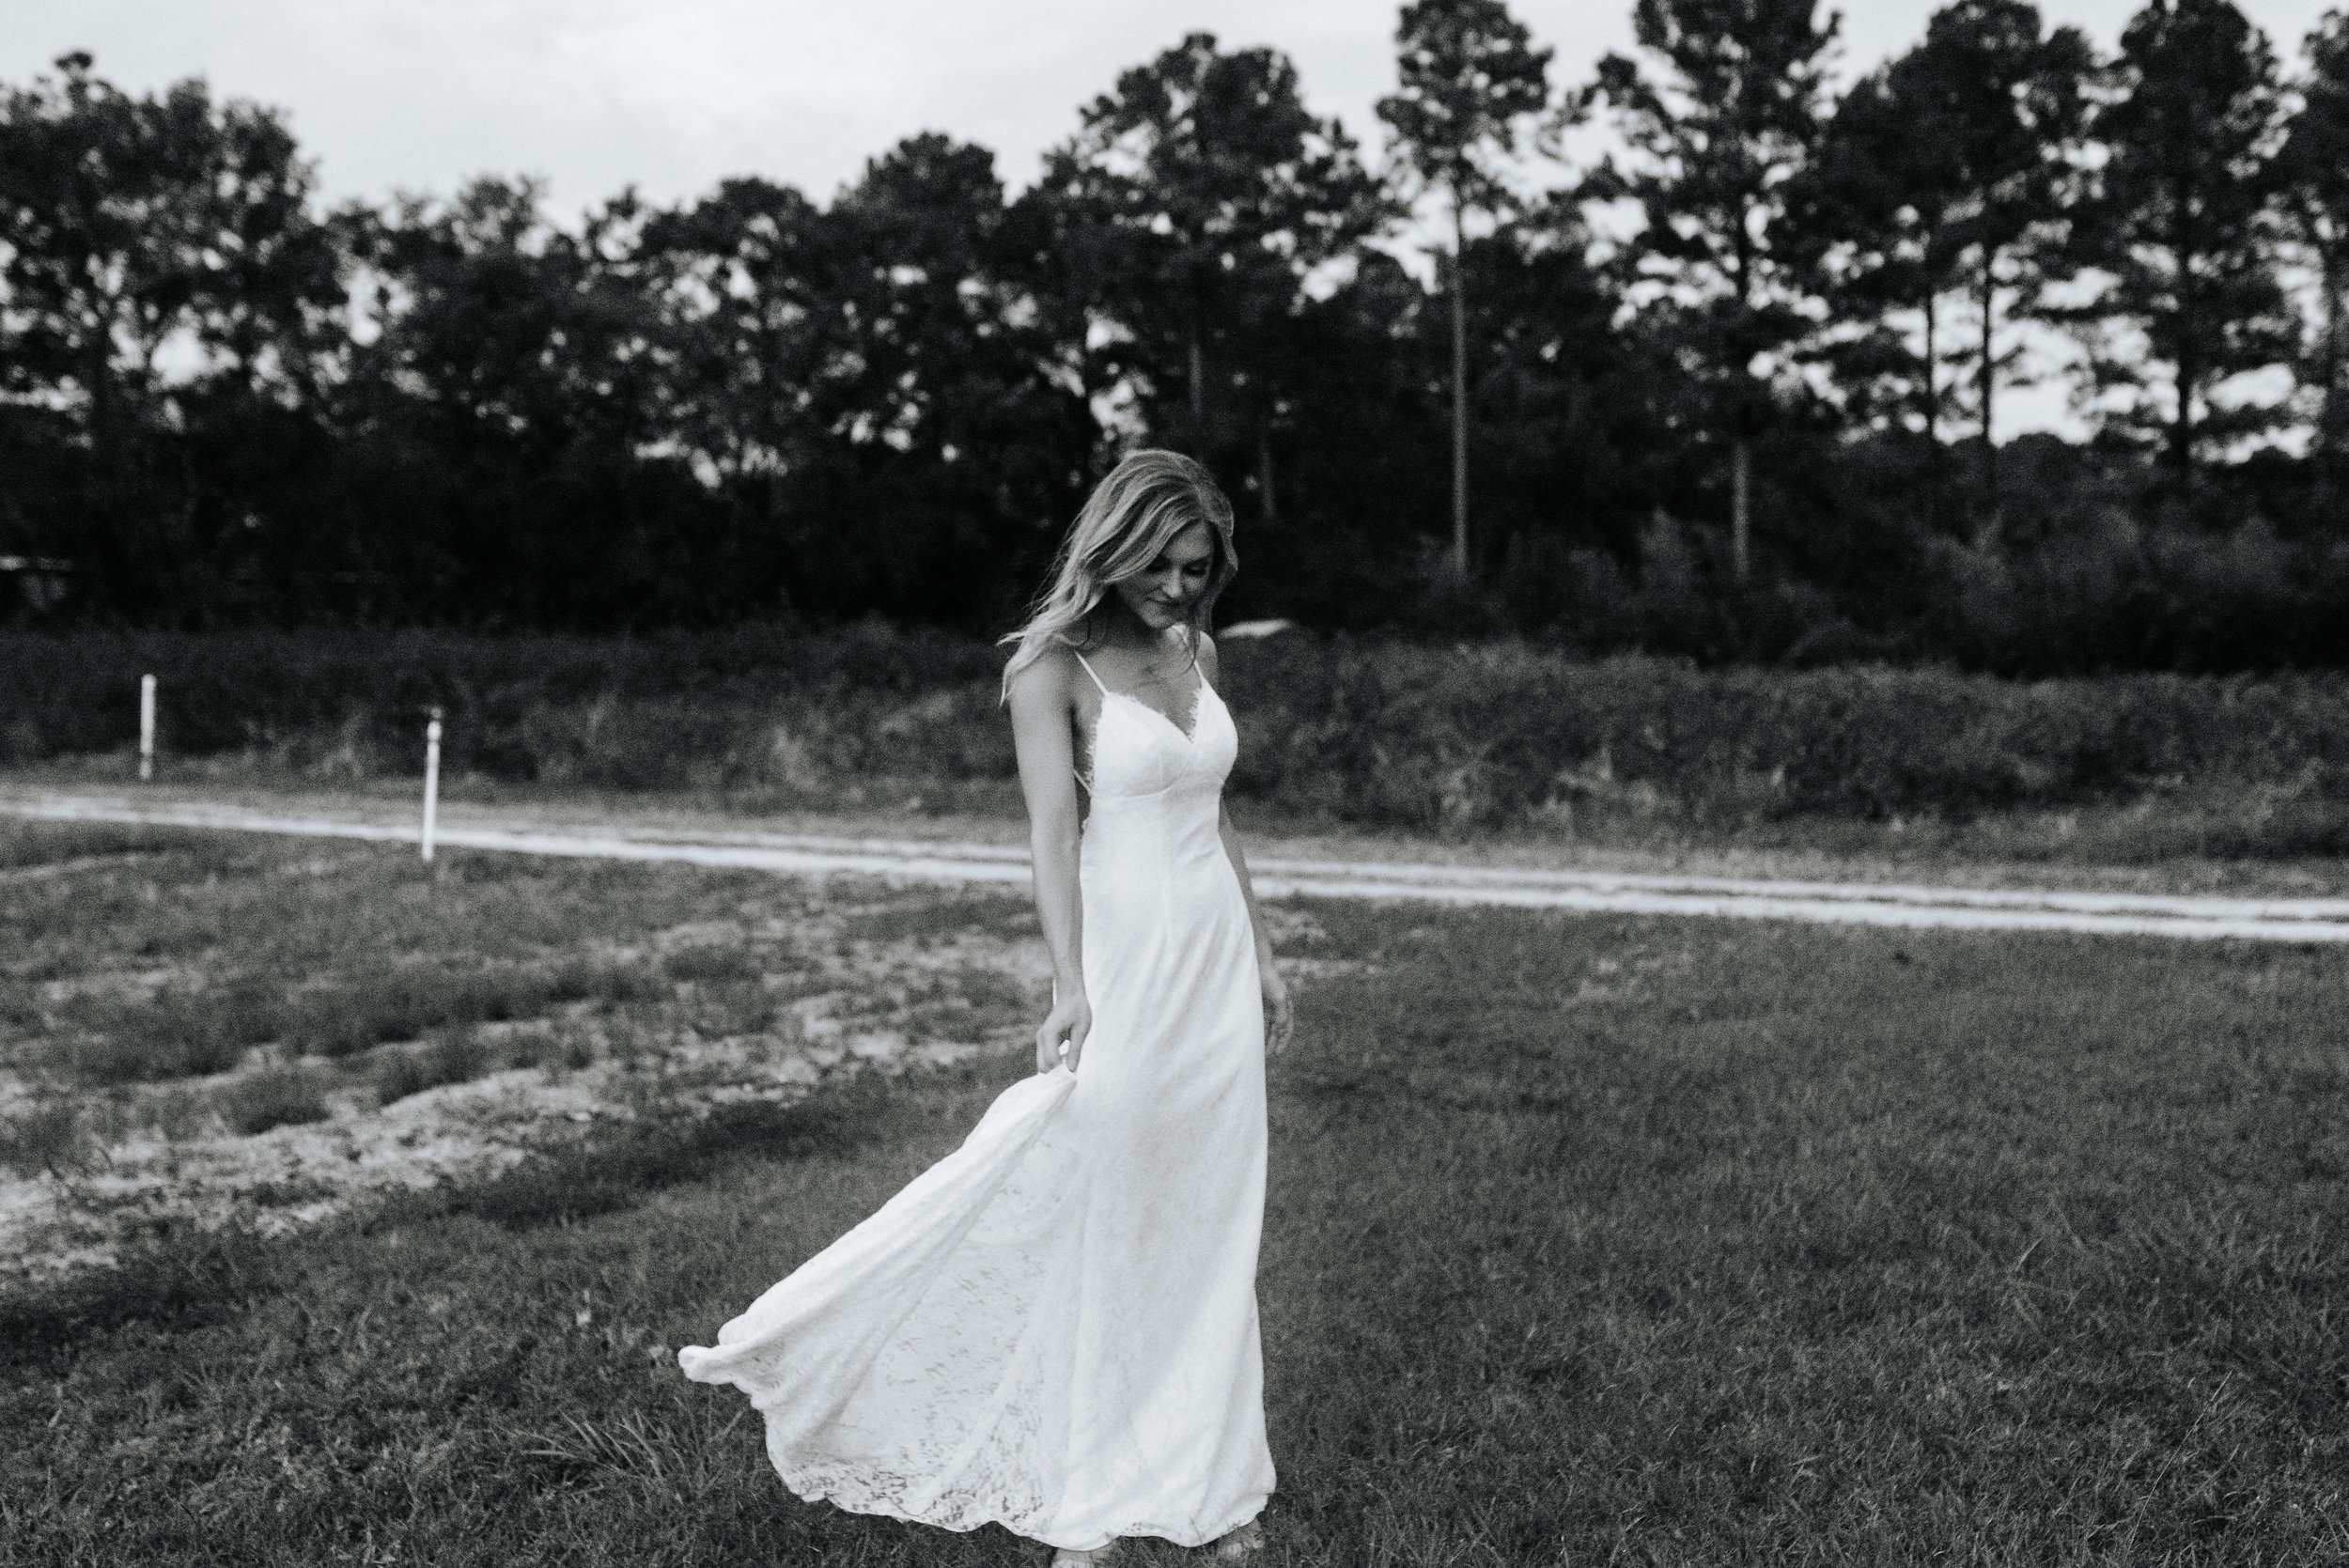 Kourtney_Sean_Savannah_Georgia_Wedding_Wormsloe_Histroic_Site_Coastal_Georgia_Botanical_Gardens_Photography_by_V_4350.jpg